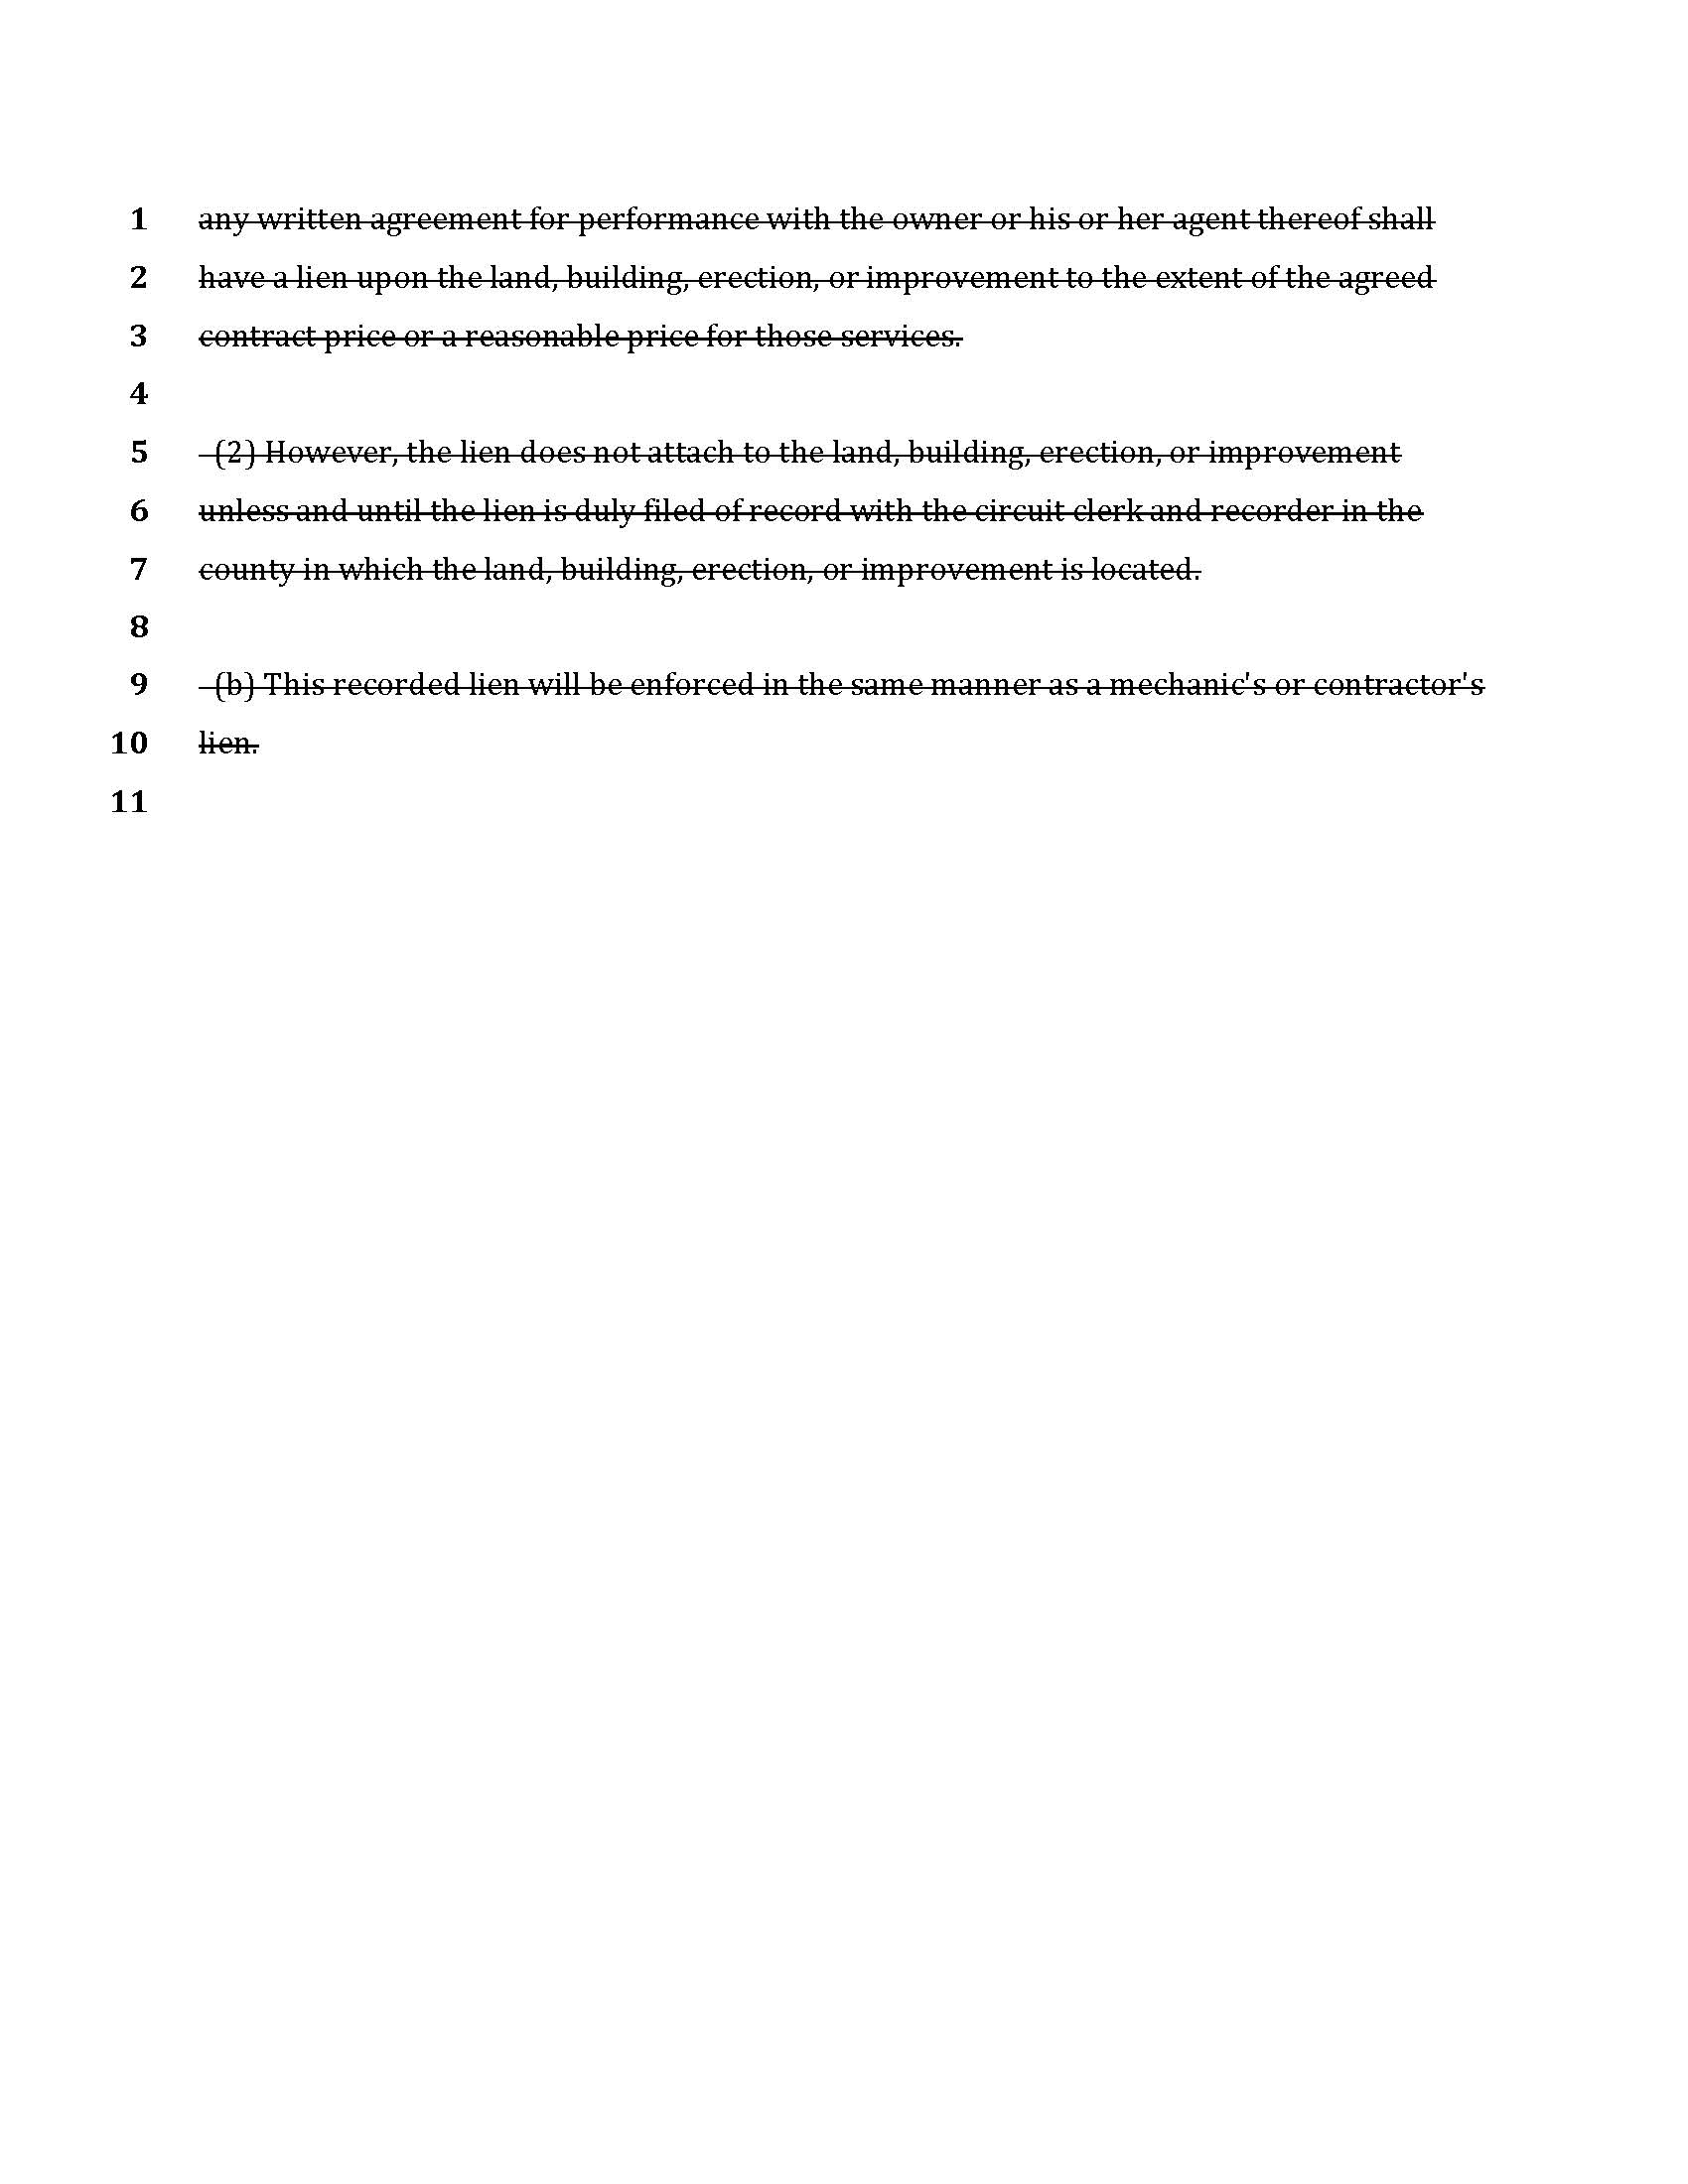 final-bill-lien-law-revisions_Page_16.jpg